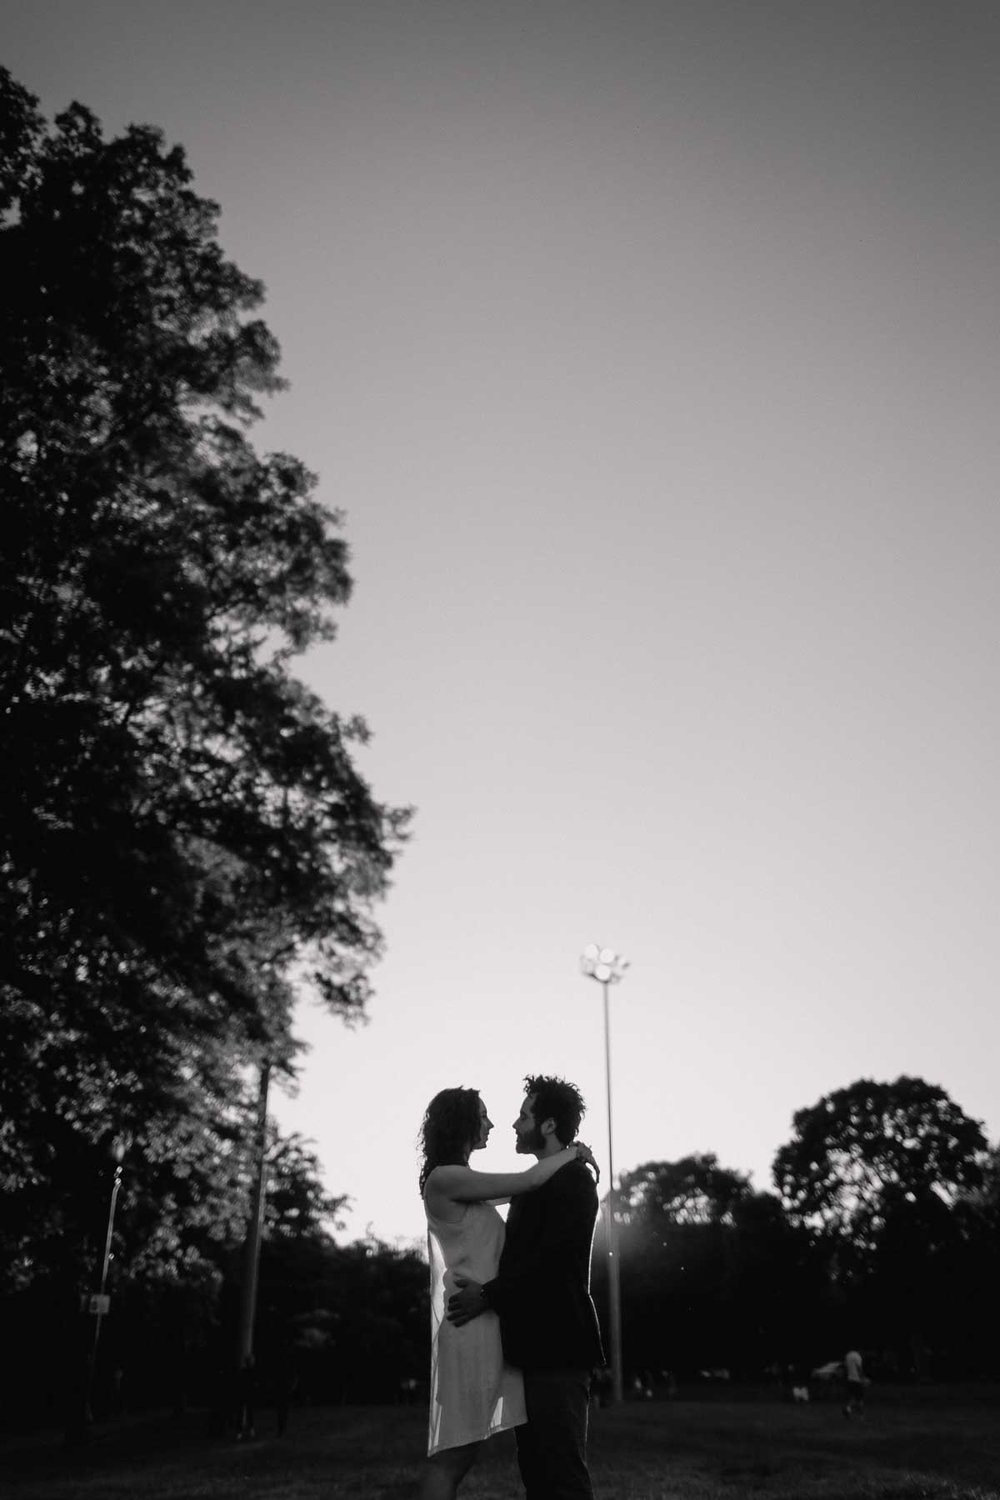 toronto engagement photography by evolylla photography 0006.jpg